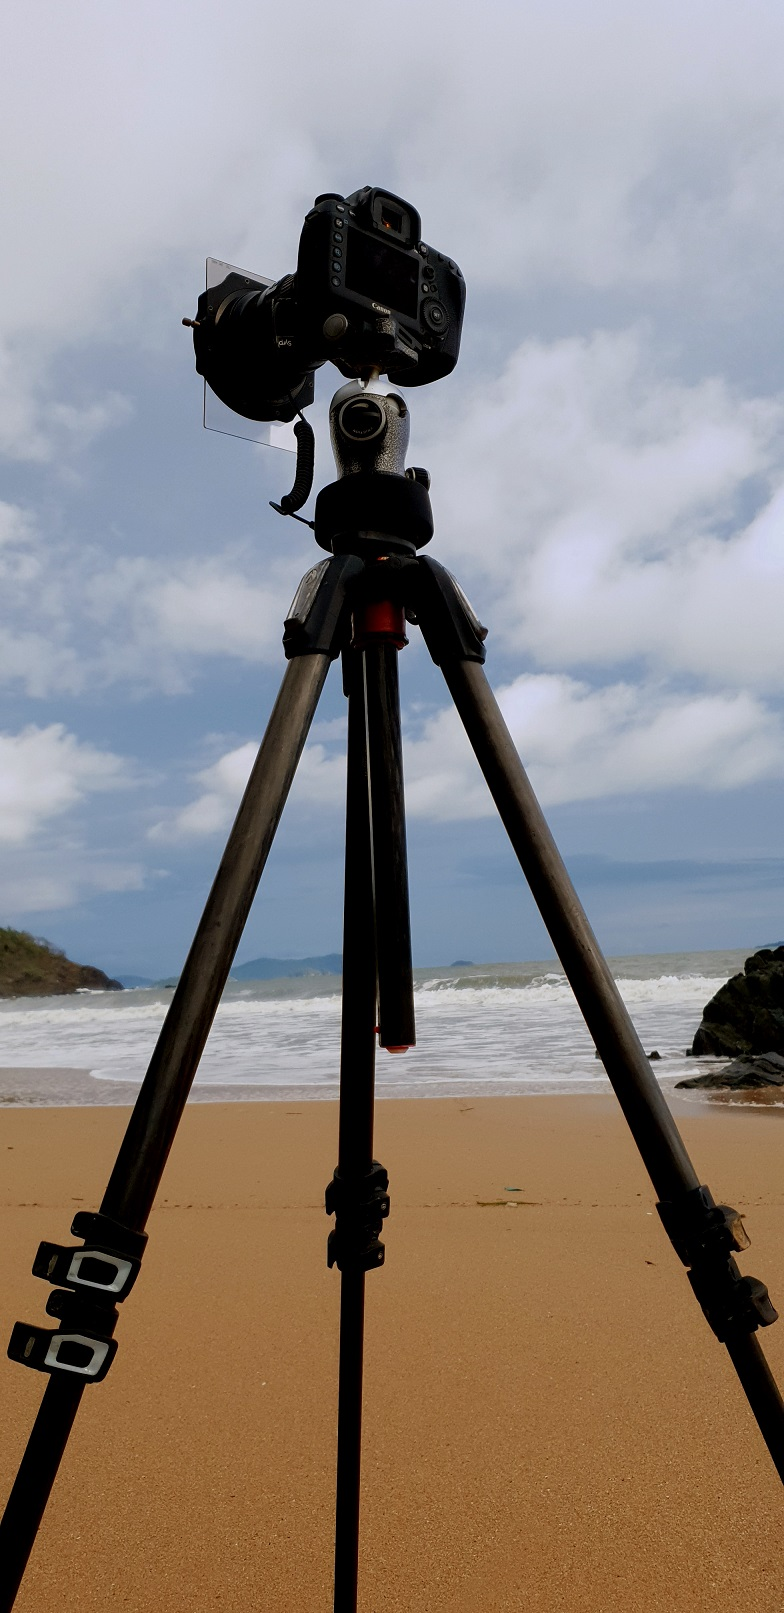 Review on Gitzo Systematic Series Tripod